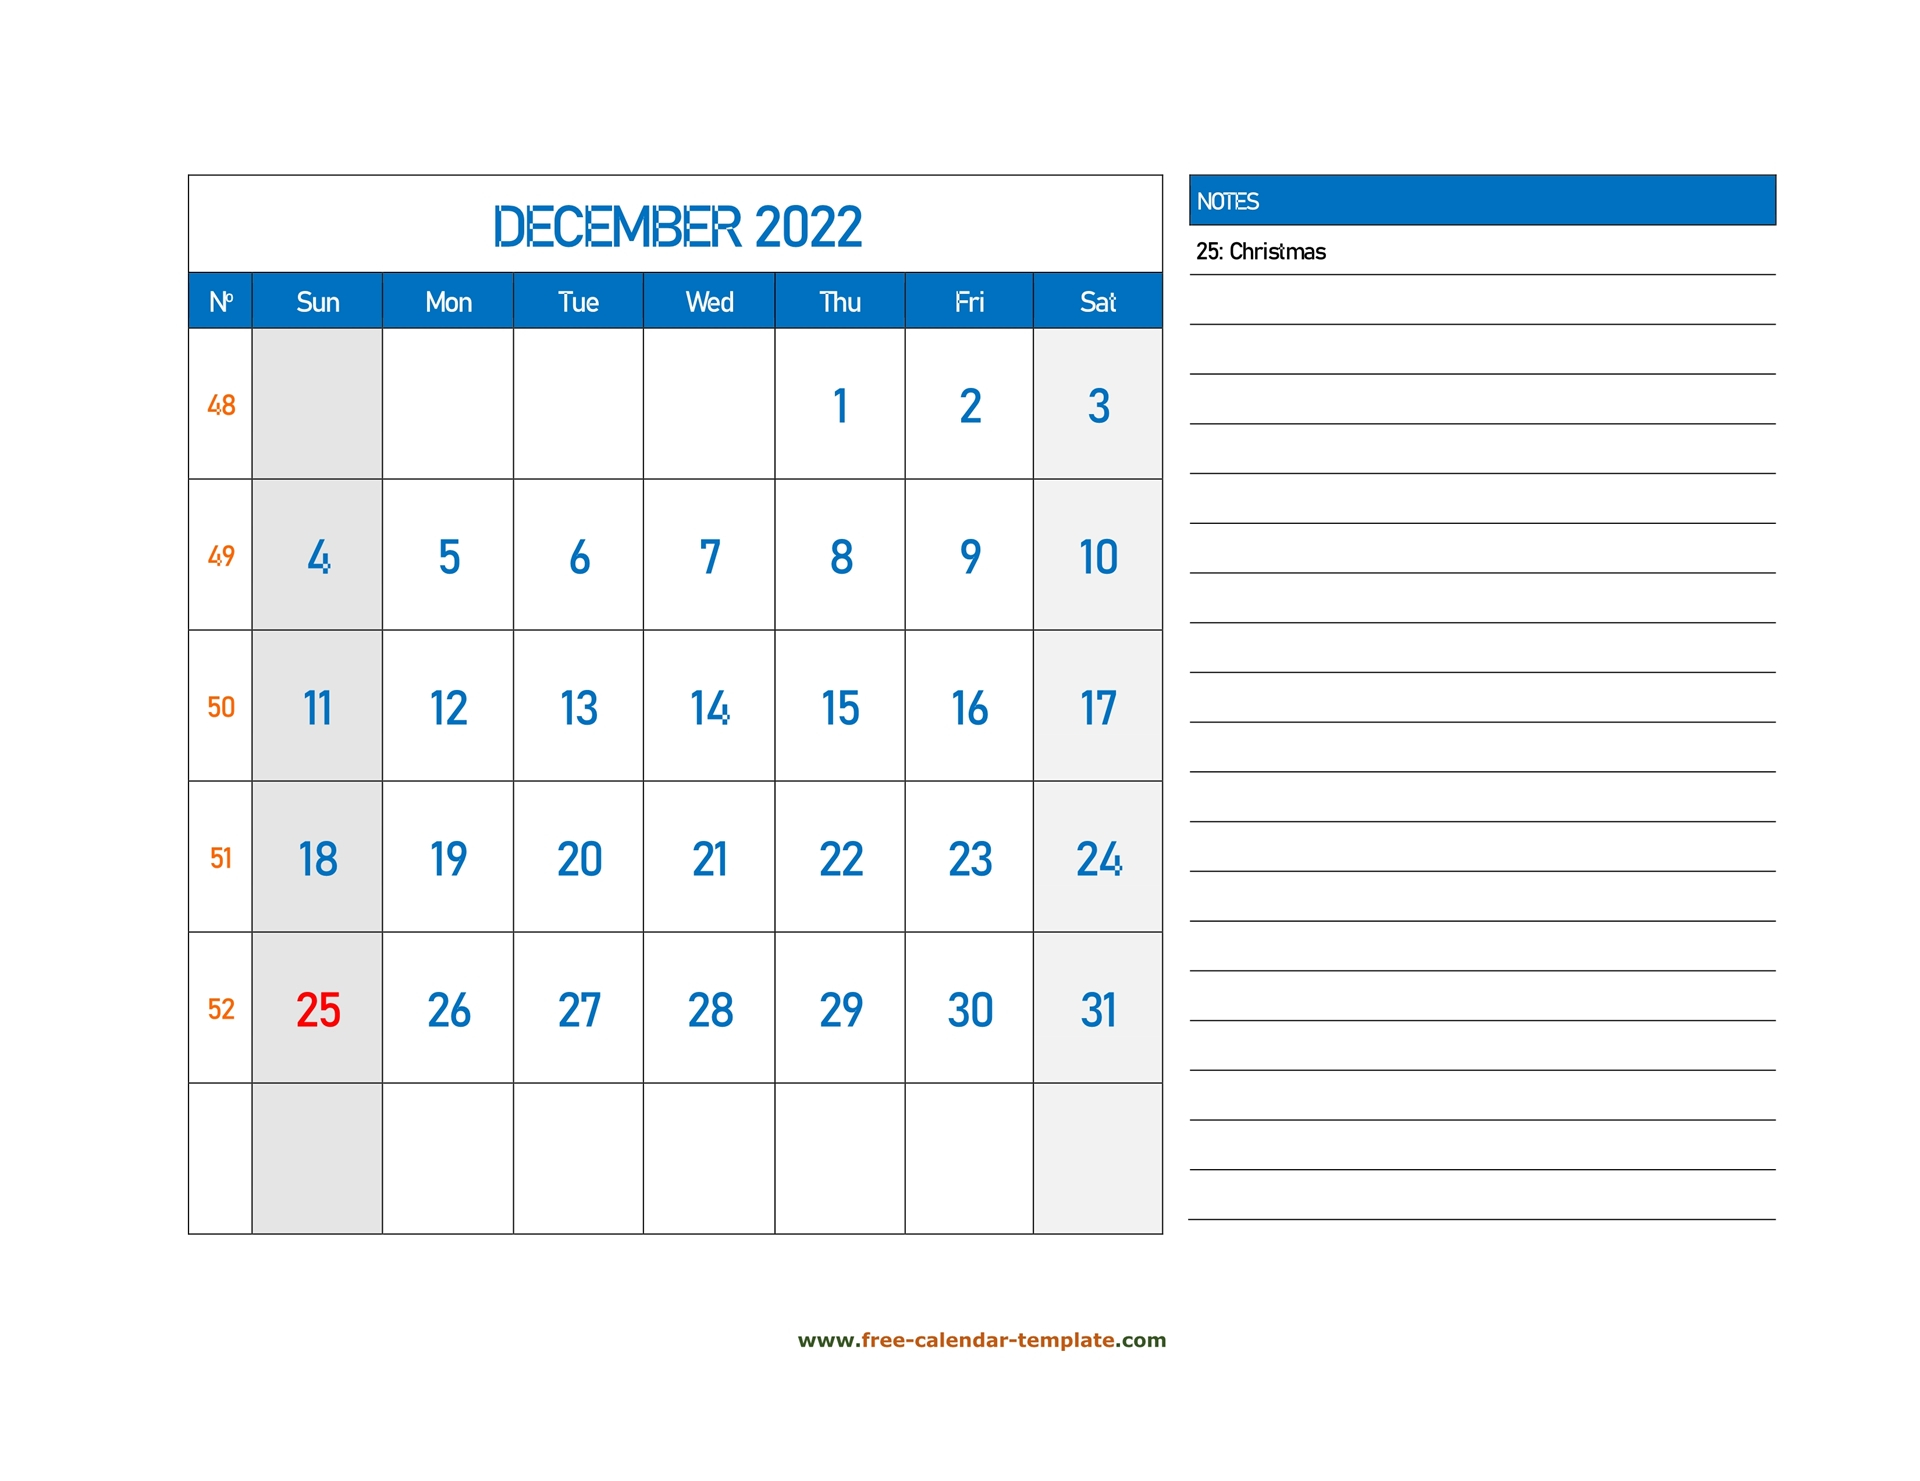 December Calendar 2022 Grid Lines For Holidays And Notes With Regard To Print Calendar January 2022 Fillable Lines